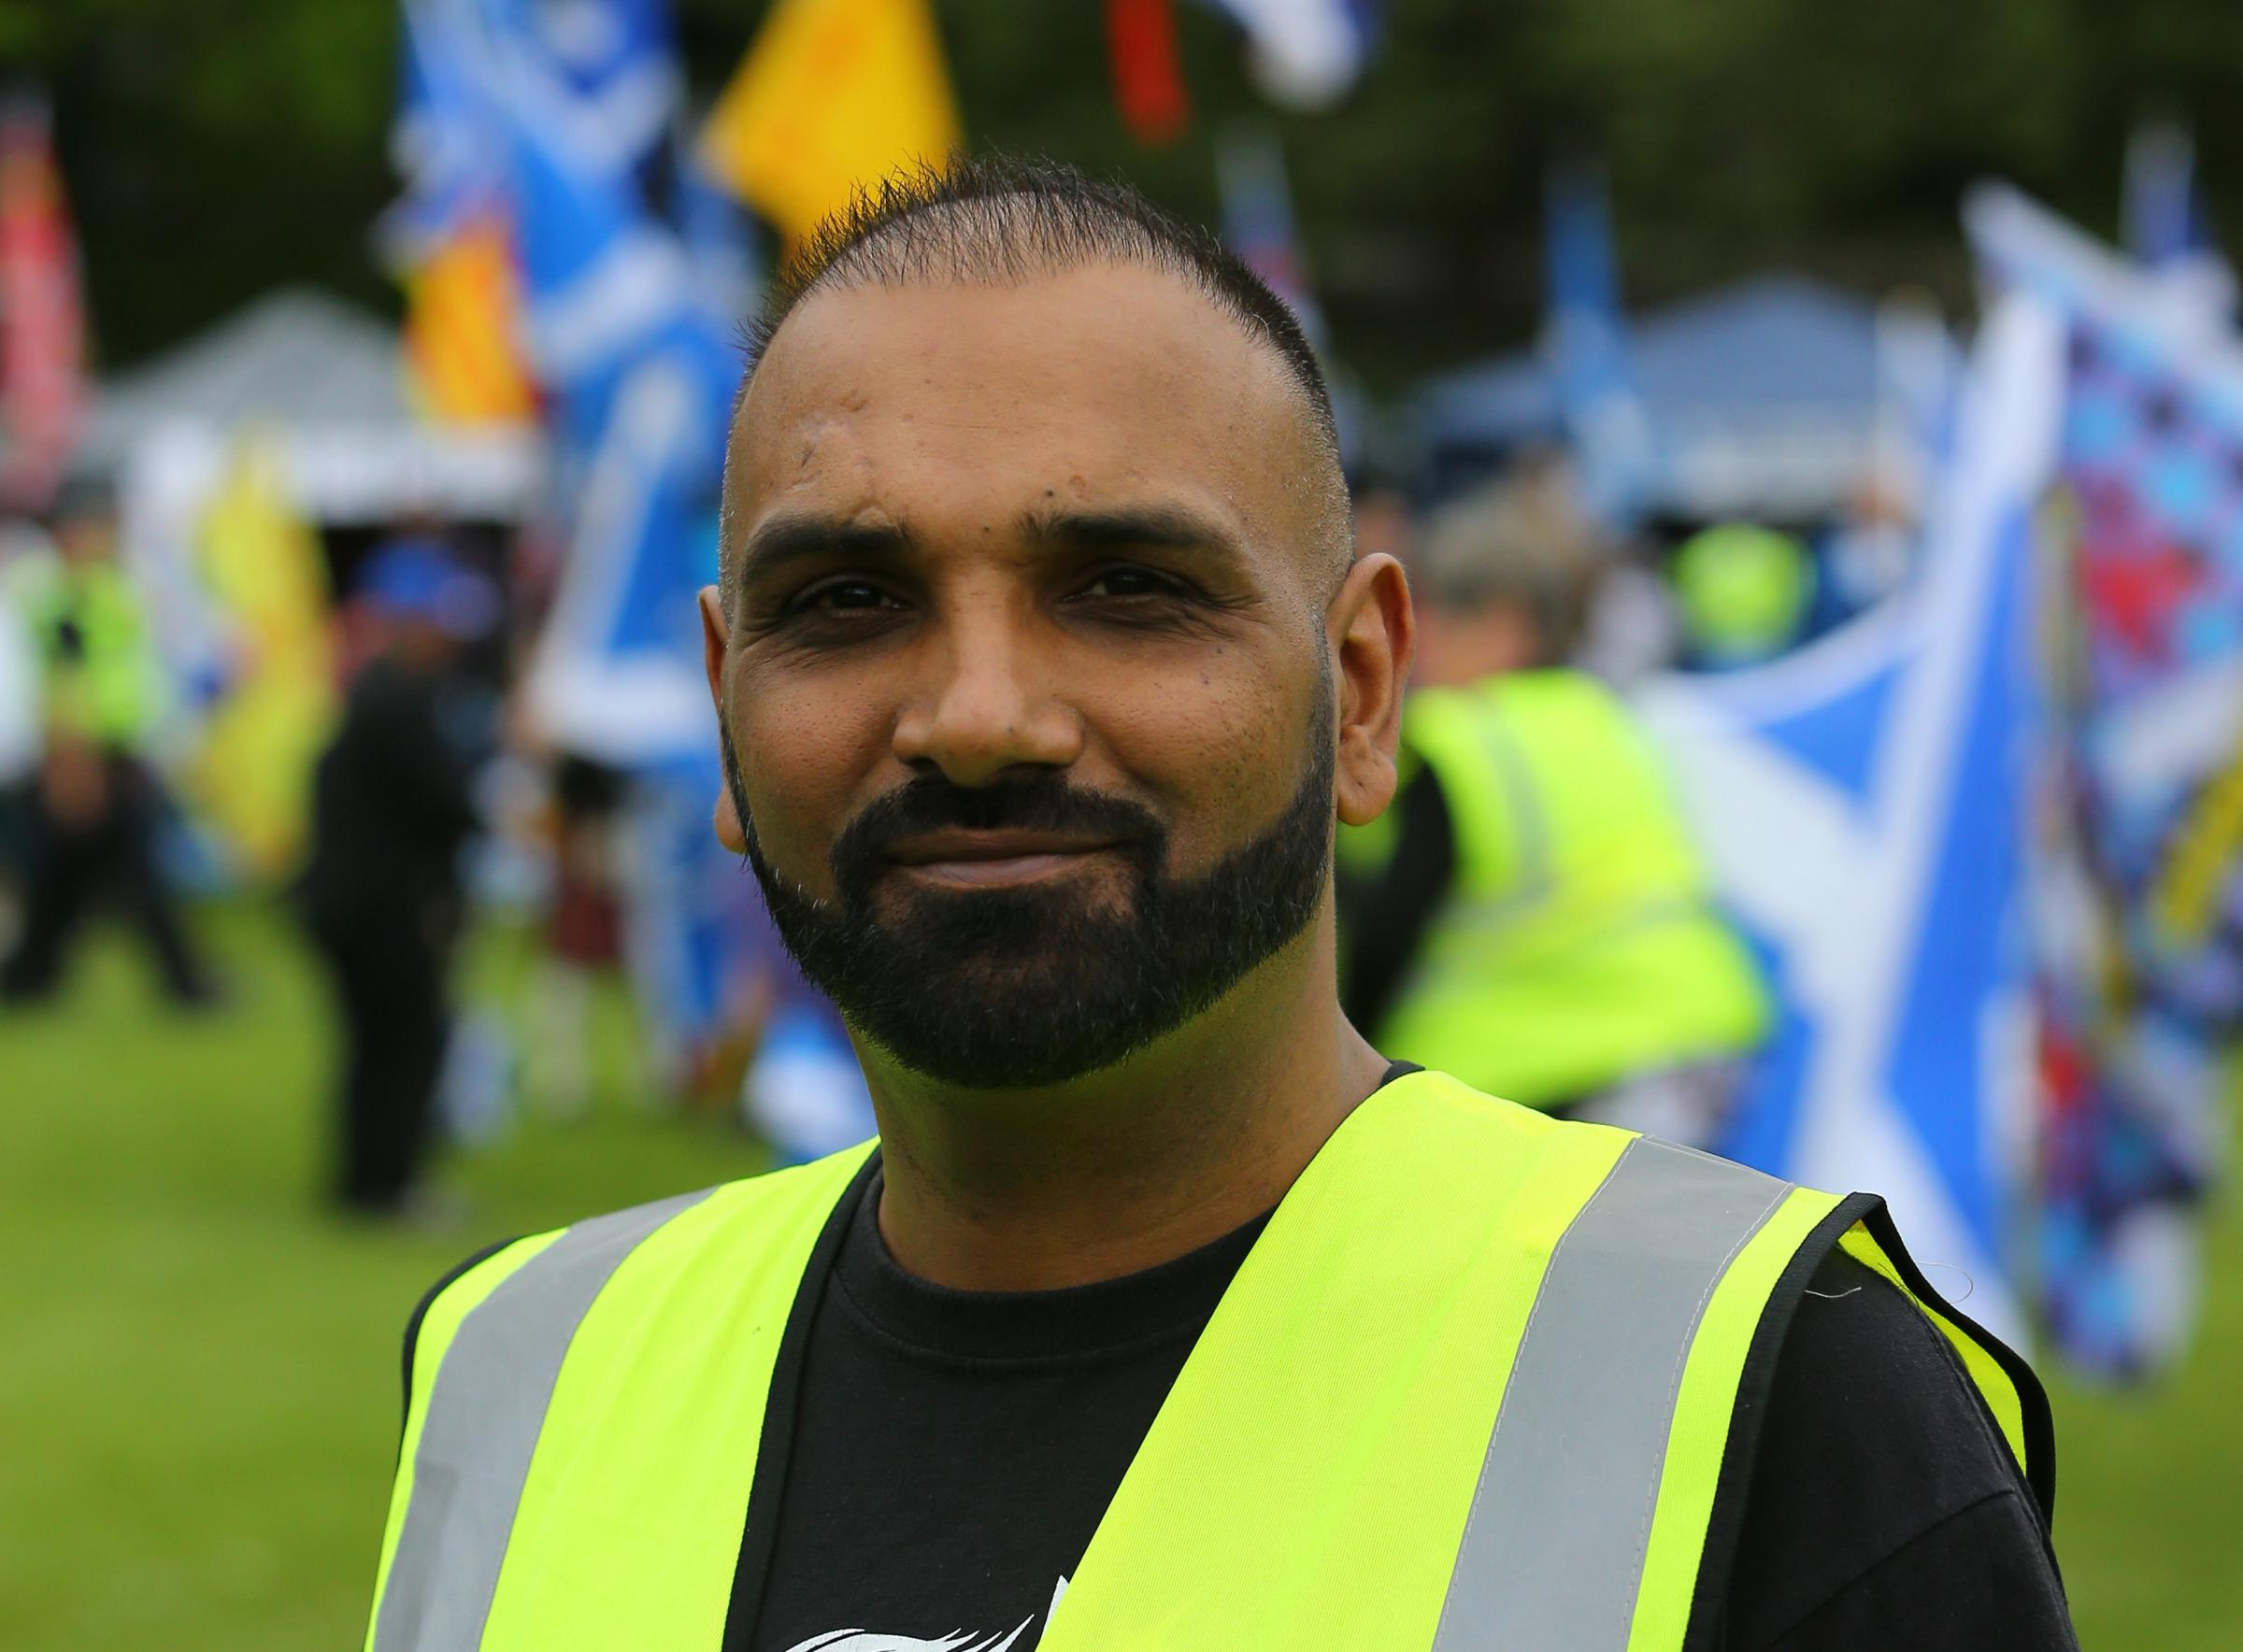 Scottish independence Glasgow march organiser Manny Singh to be sentenced